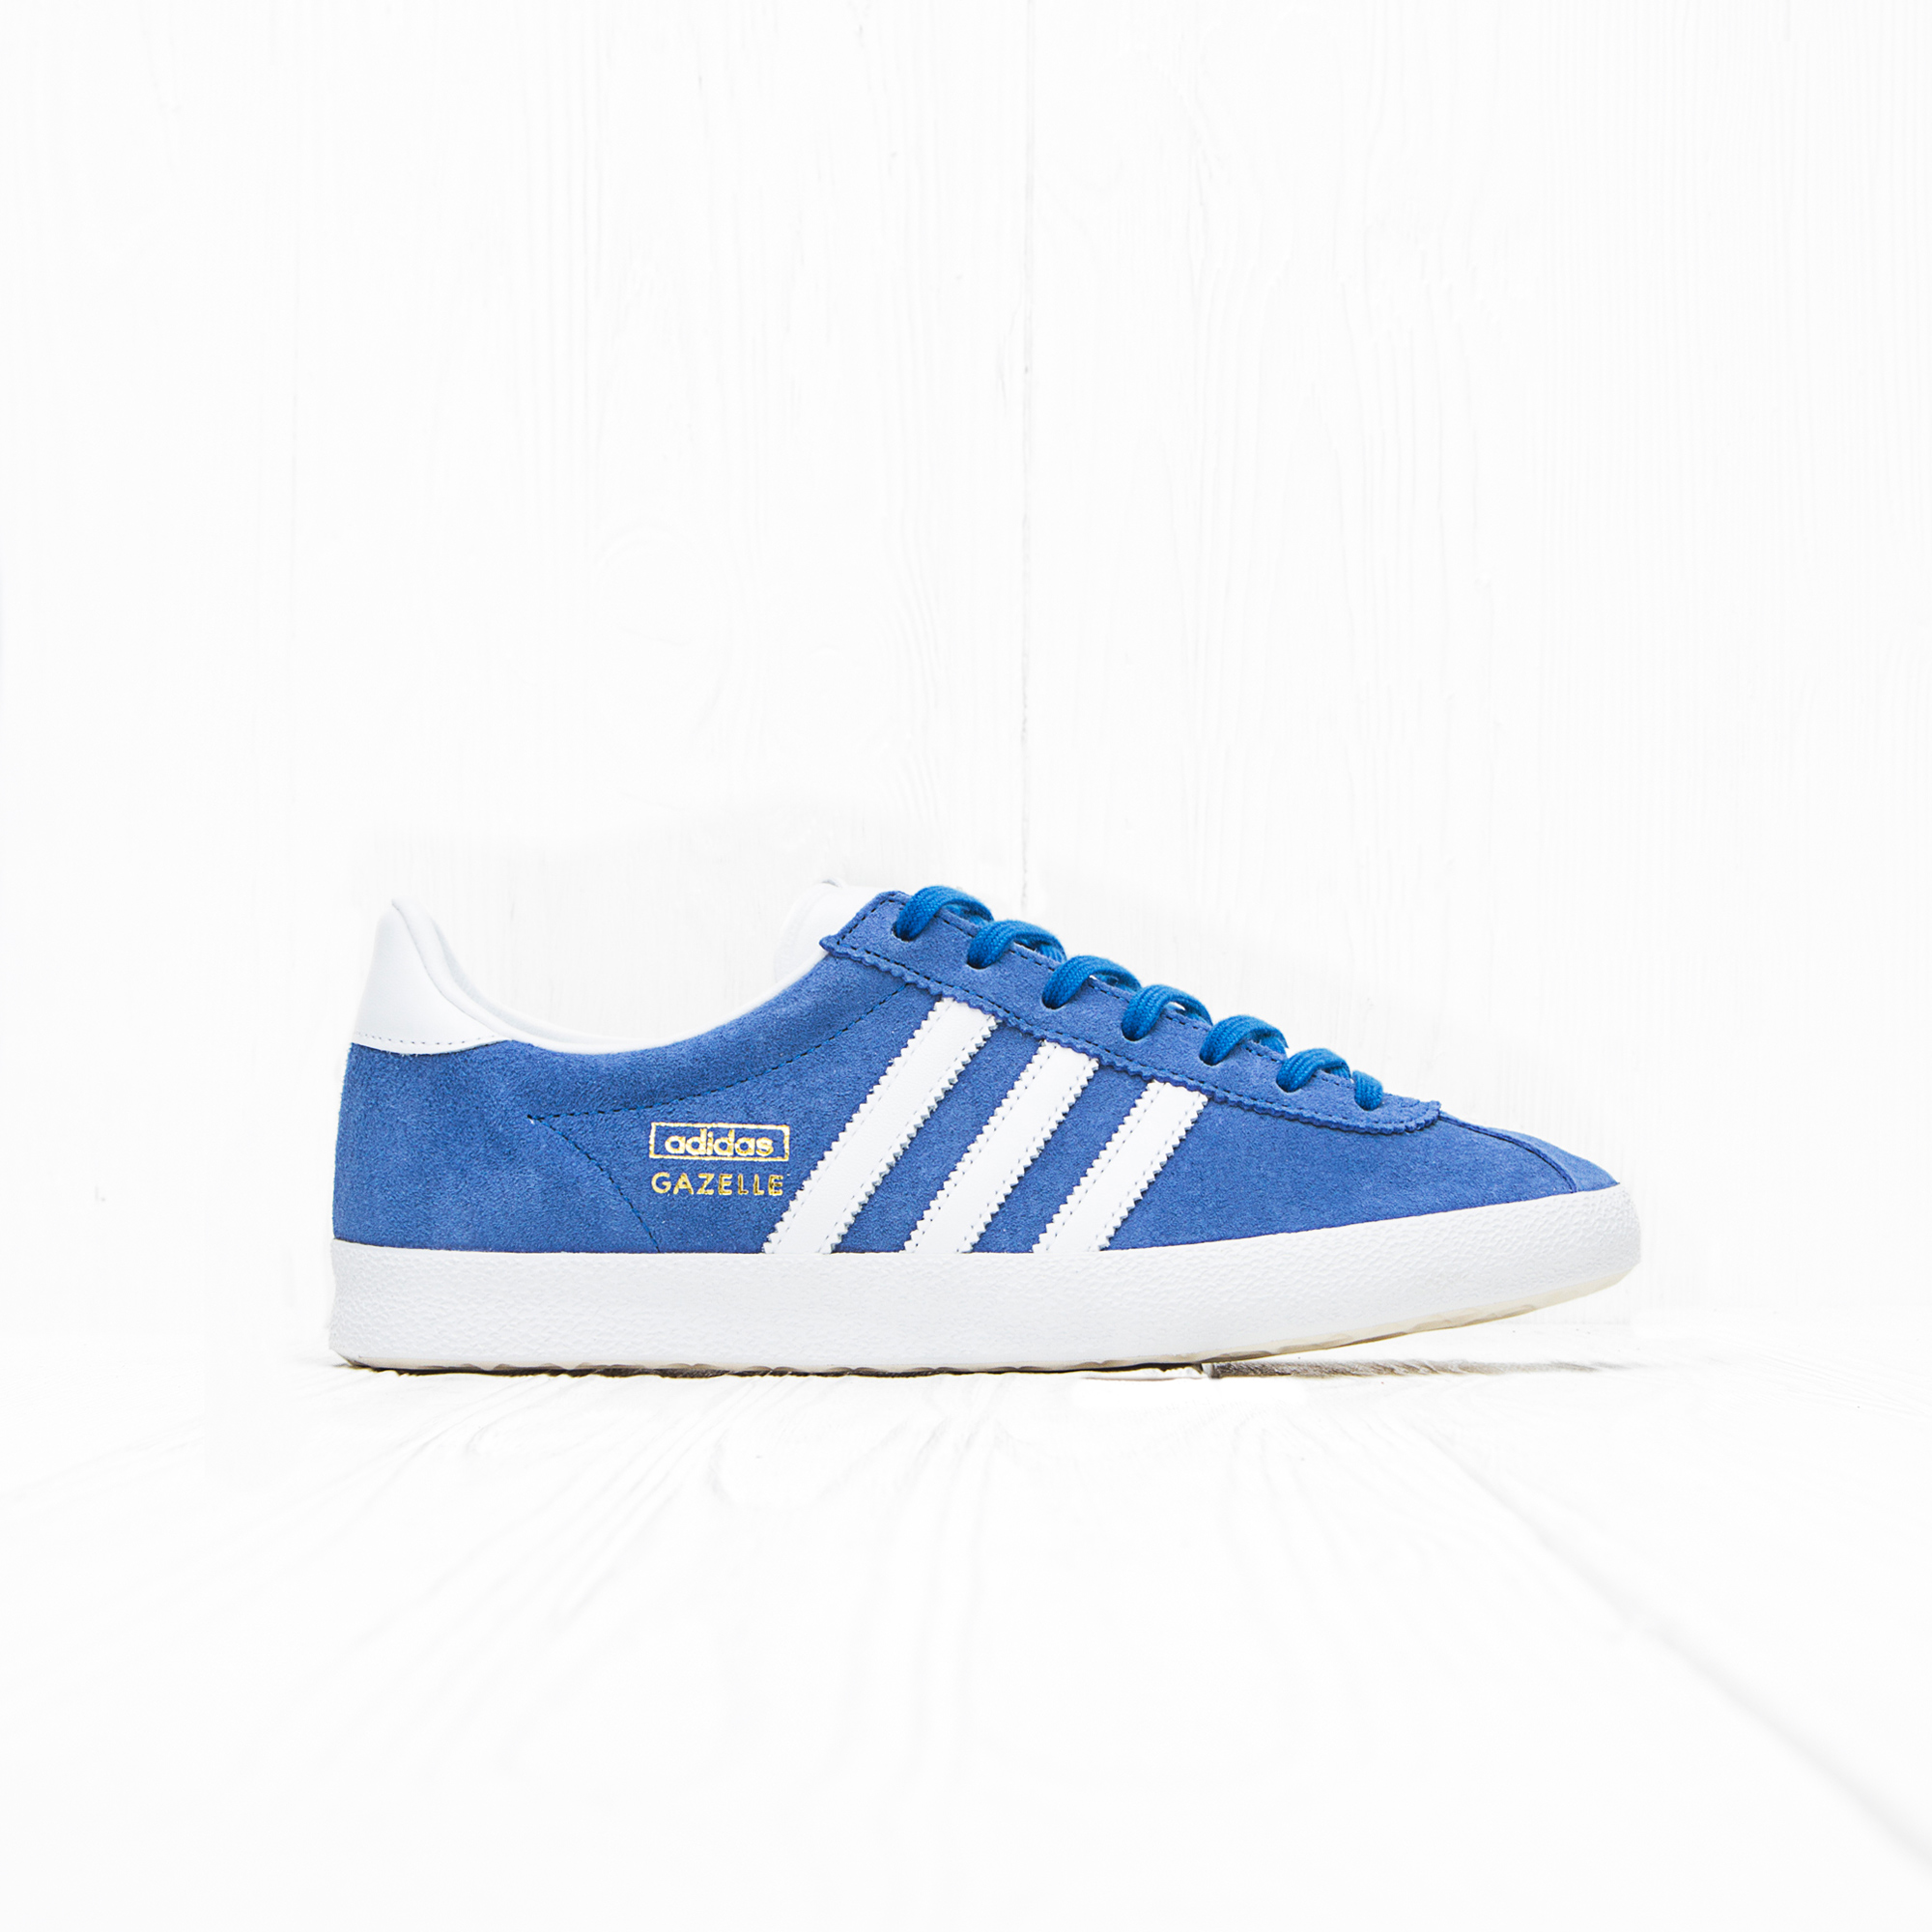 Кроссовки Adidas GAZELLE OG Air Force Blue/White/Metallic Gold